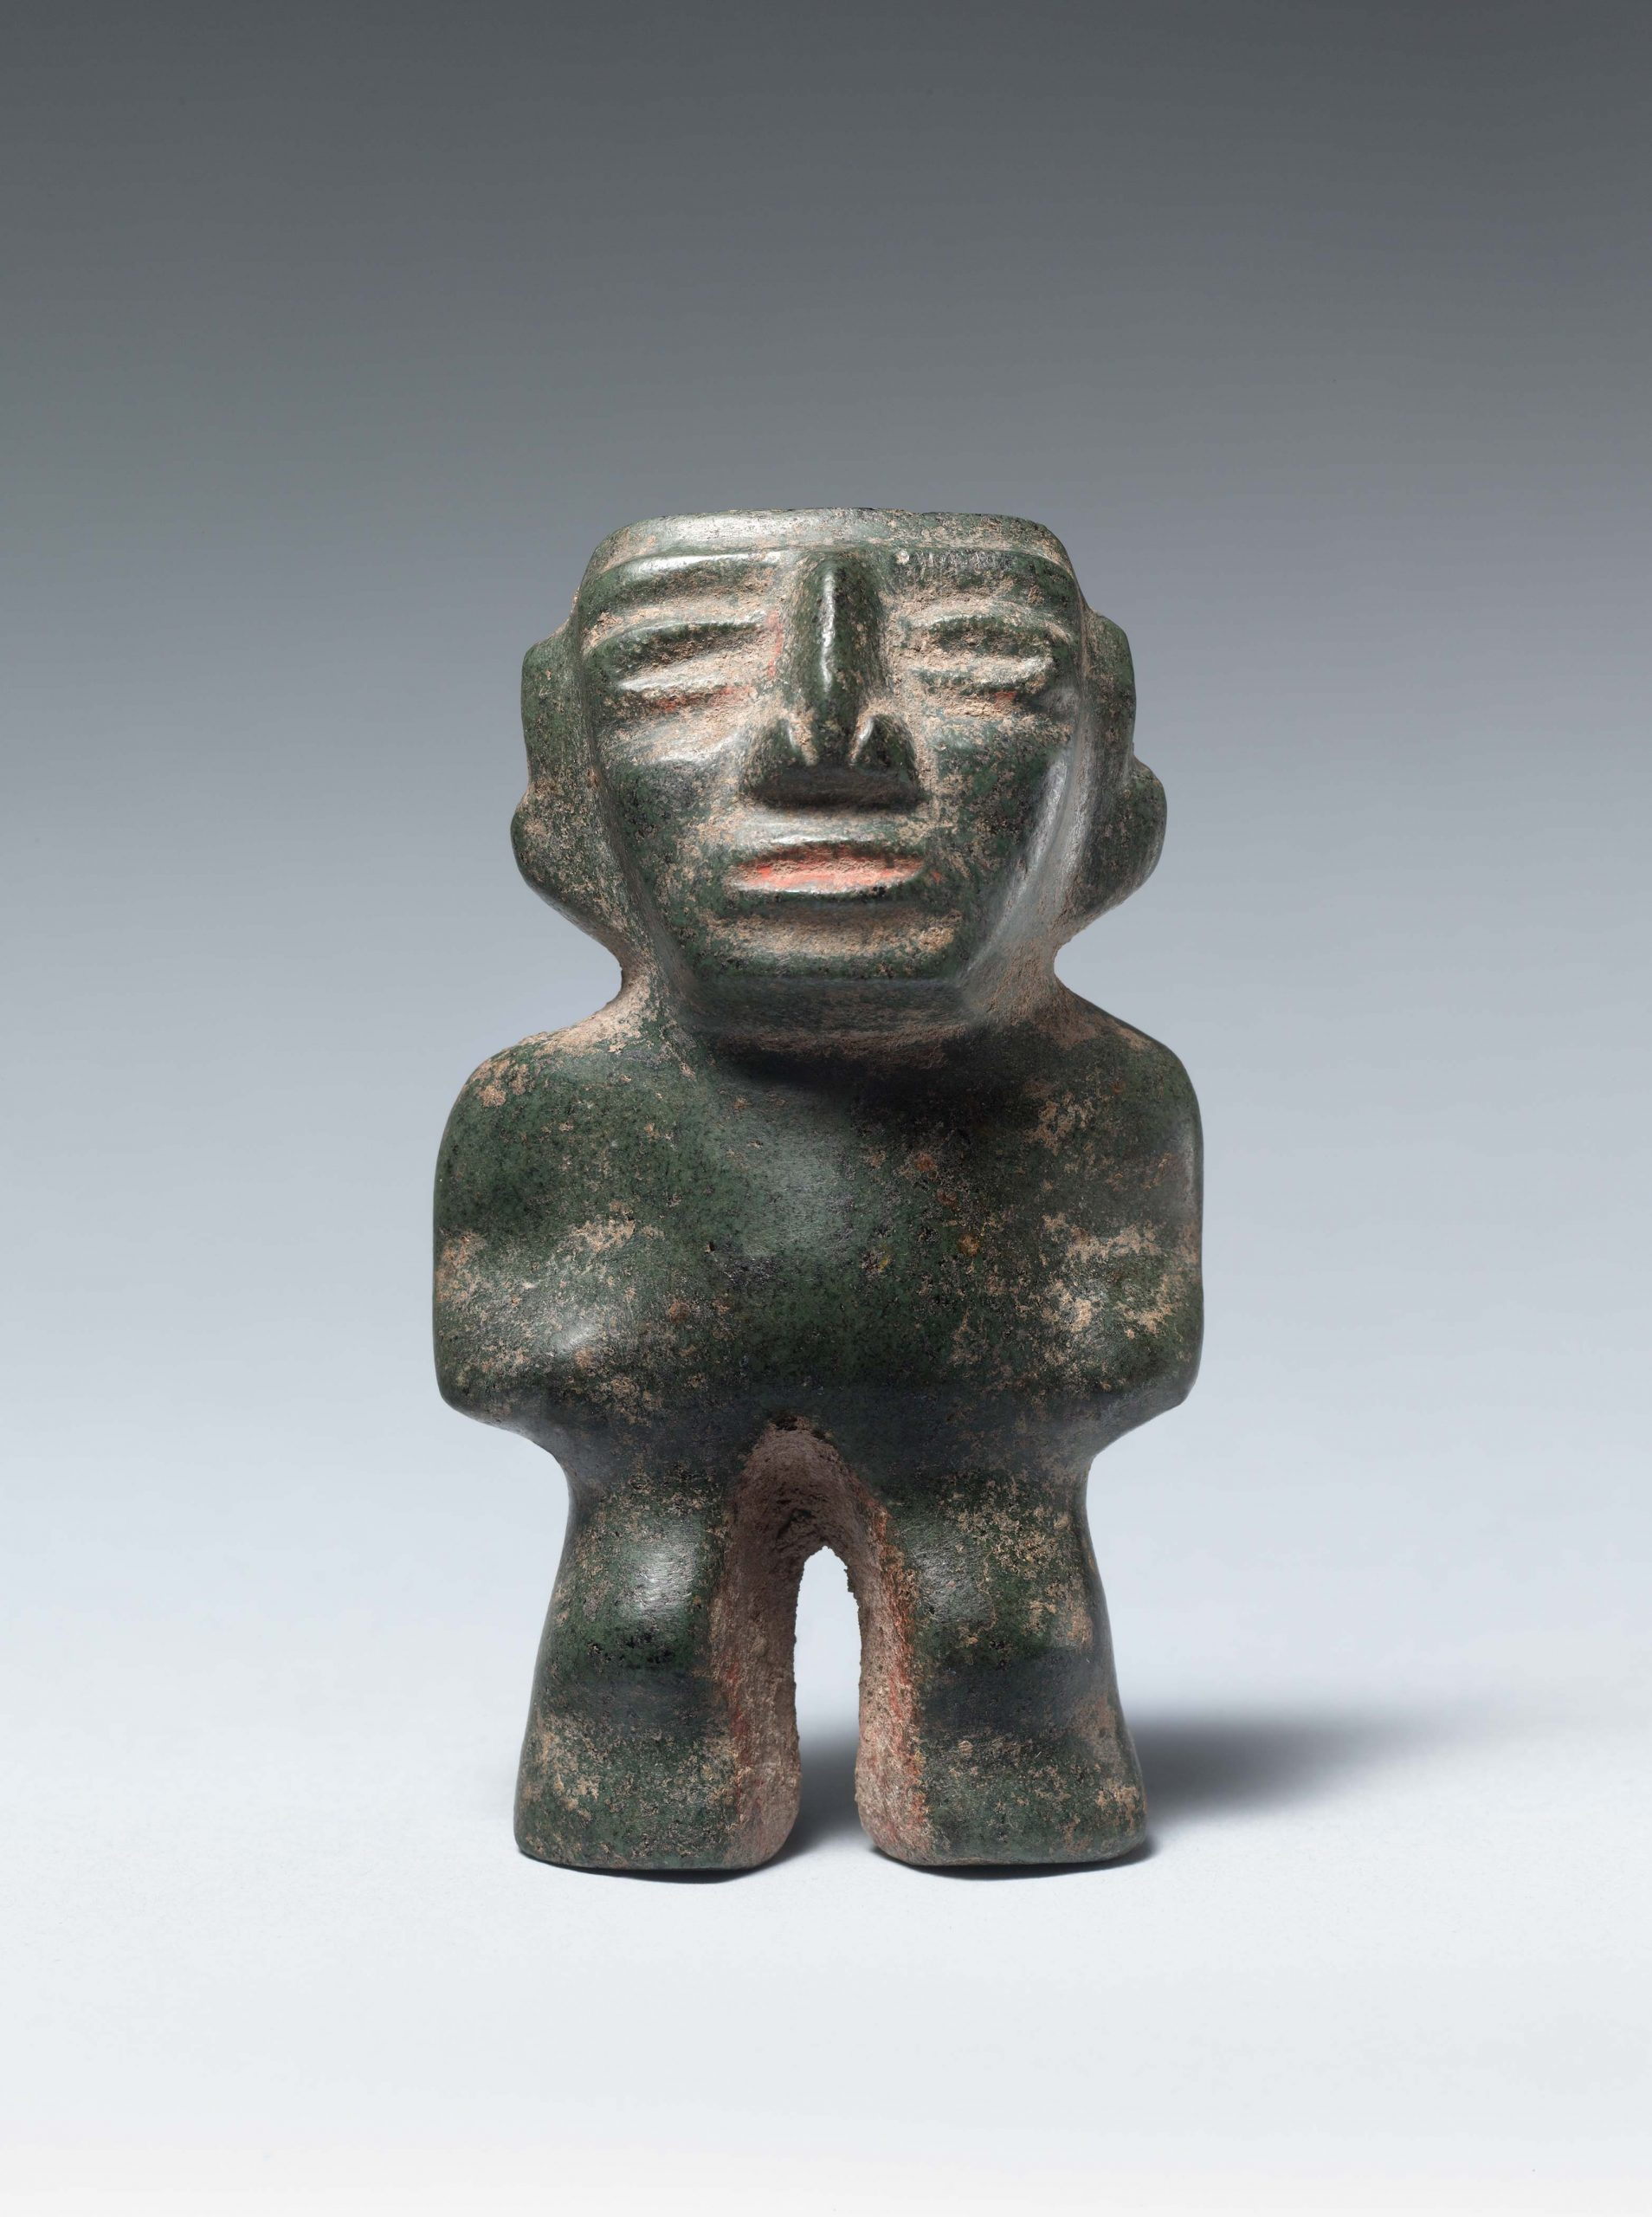 Abstract green stone standing figure with a large pointed nose and indented facial features.